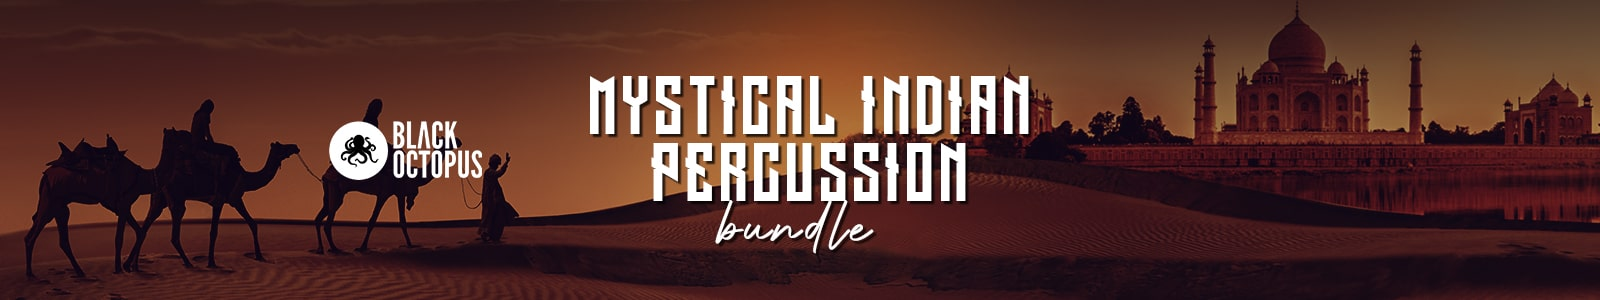 mystical indian percussion bundle